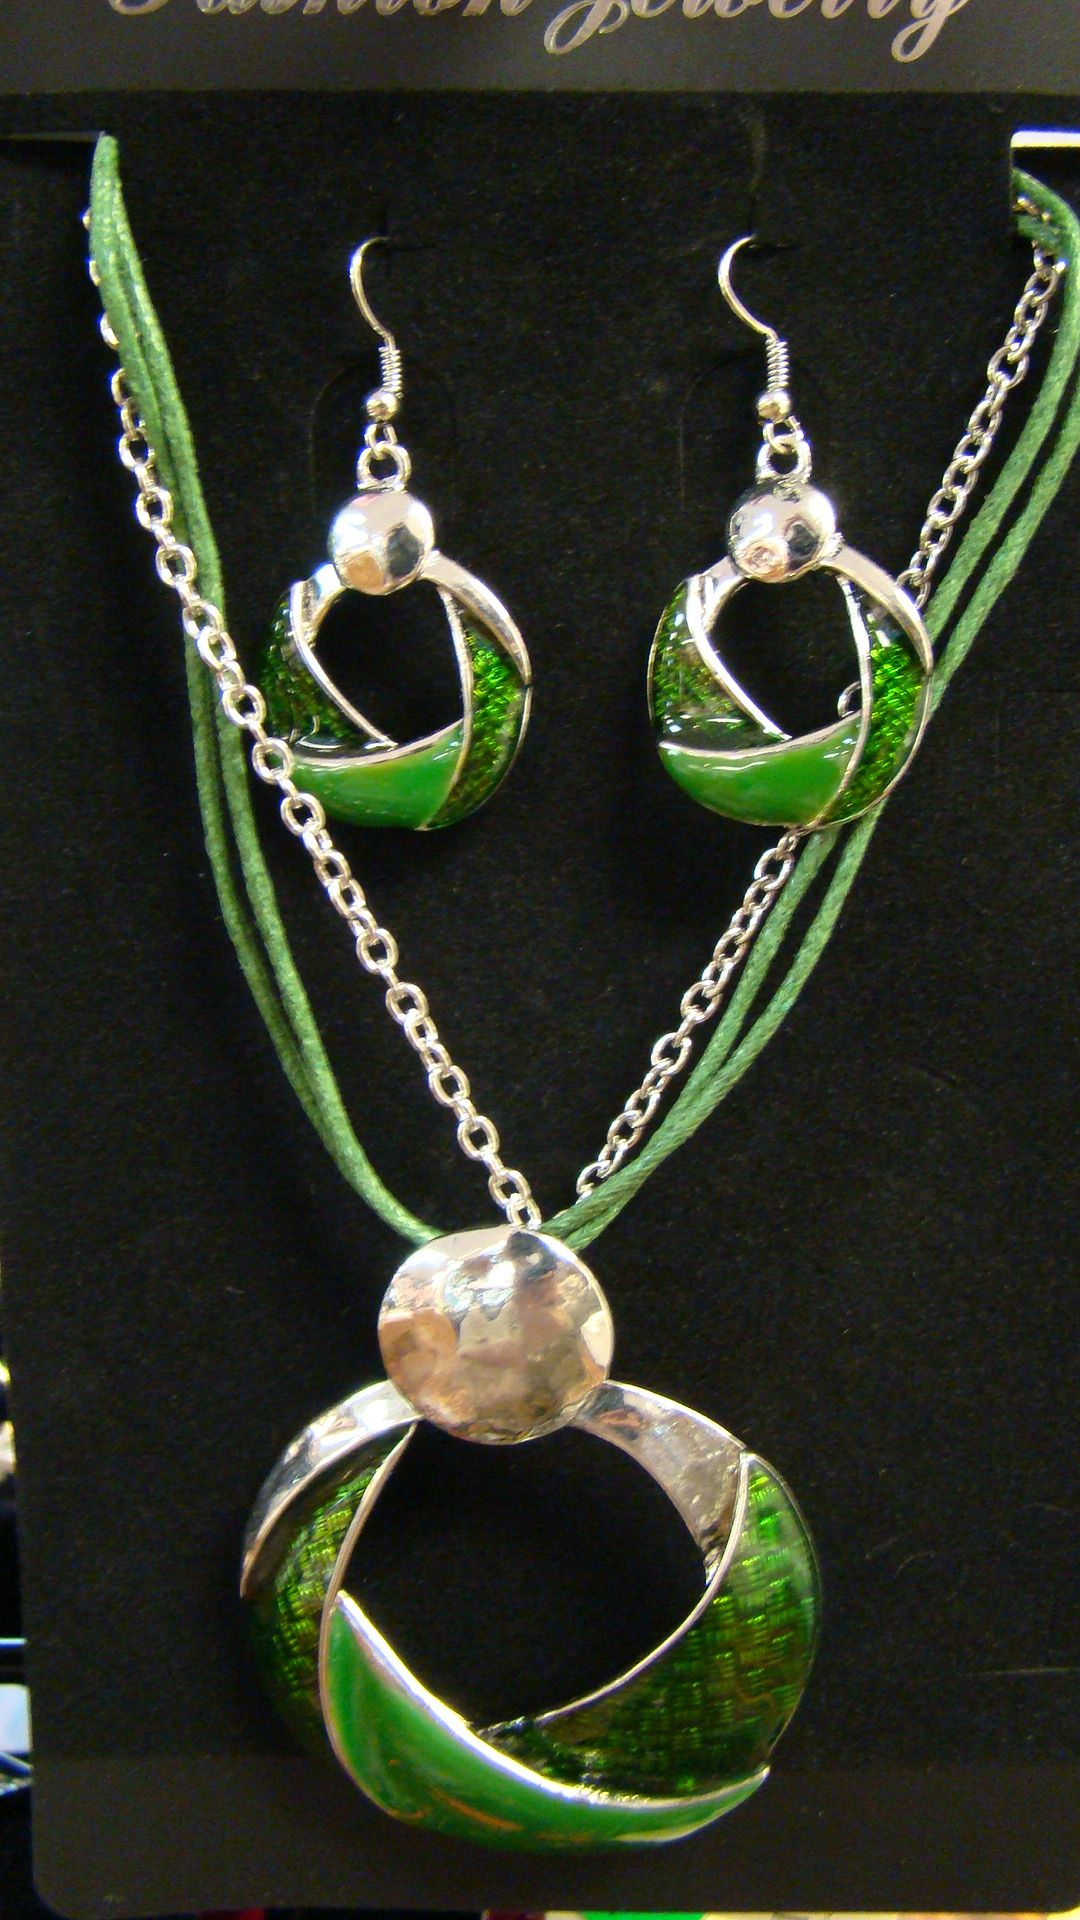 Affordable Accessories 4311 Mundy Mill Rd Oakwood, GA 30566 770-531-9991 www.affordableaccessories.net